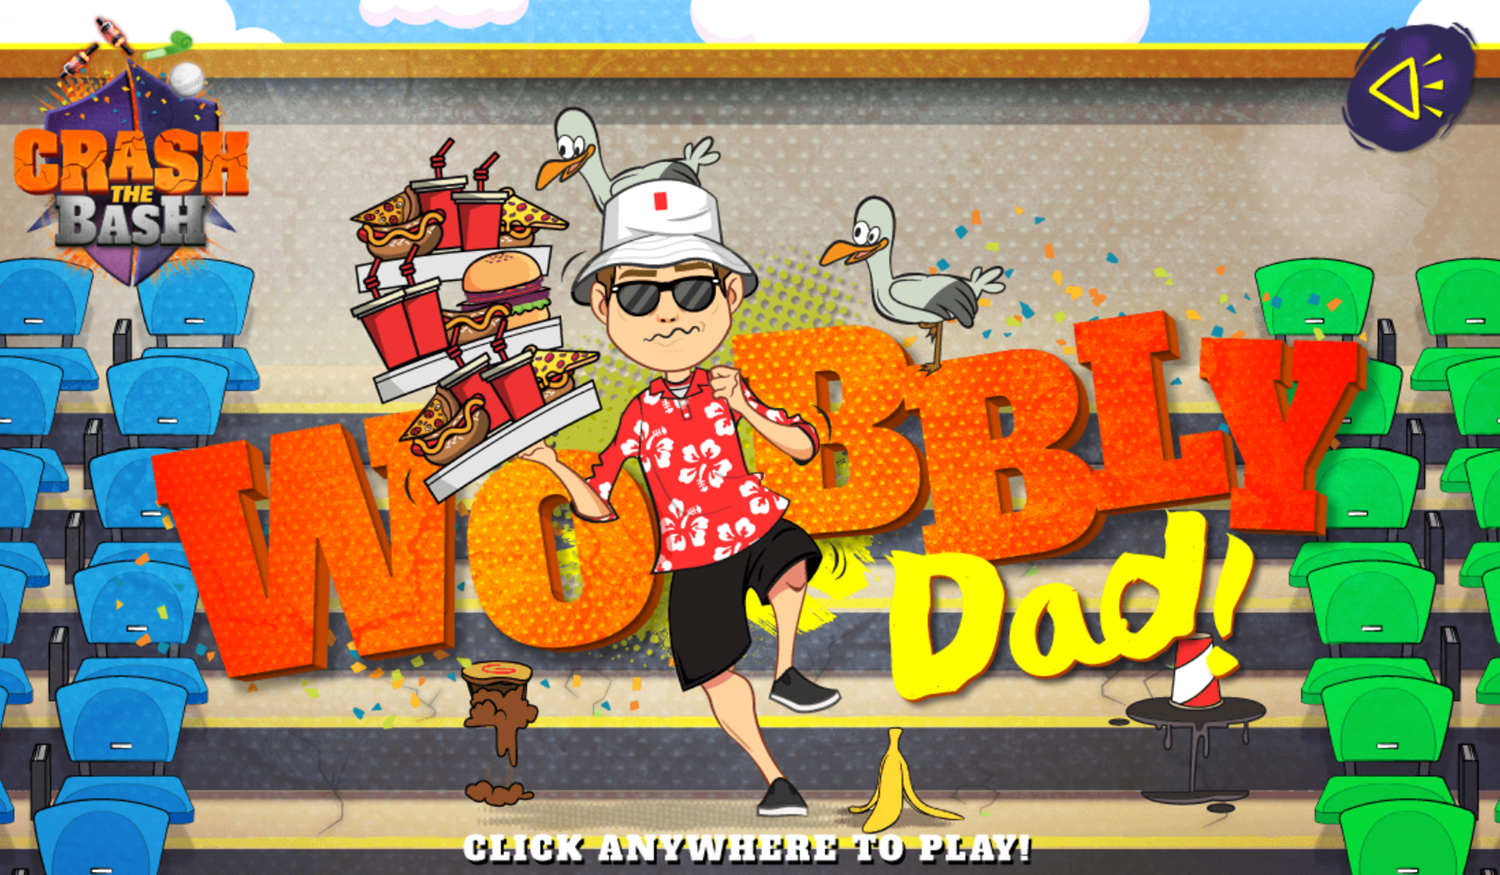 Crash the Bash Wobbly Dad Game Welcome Screen Screenshot.